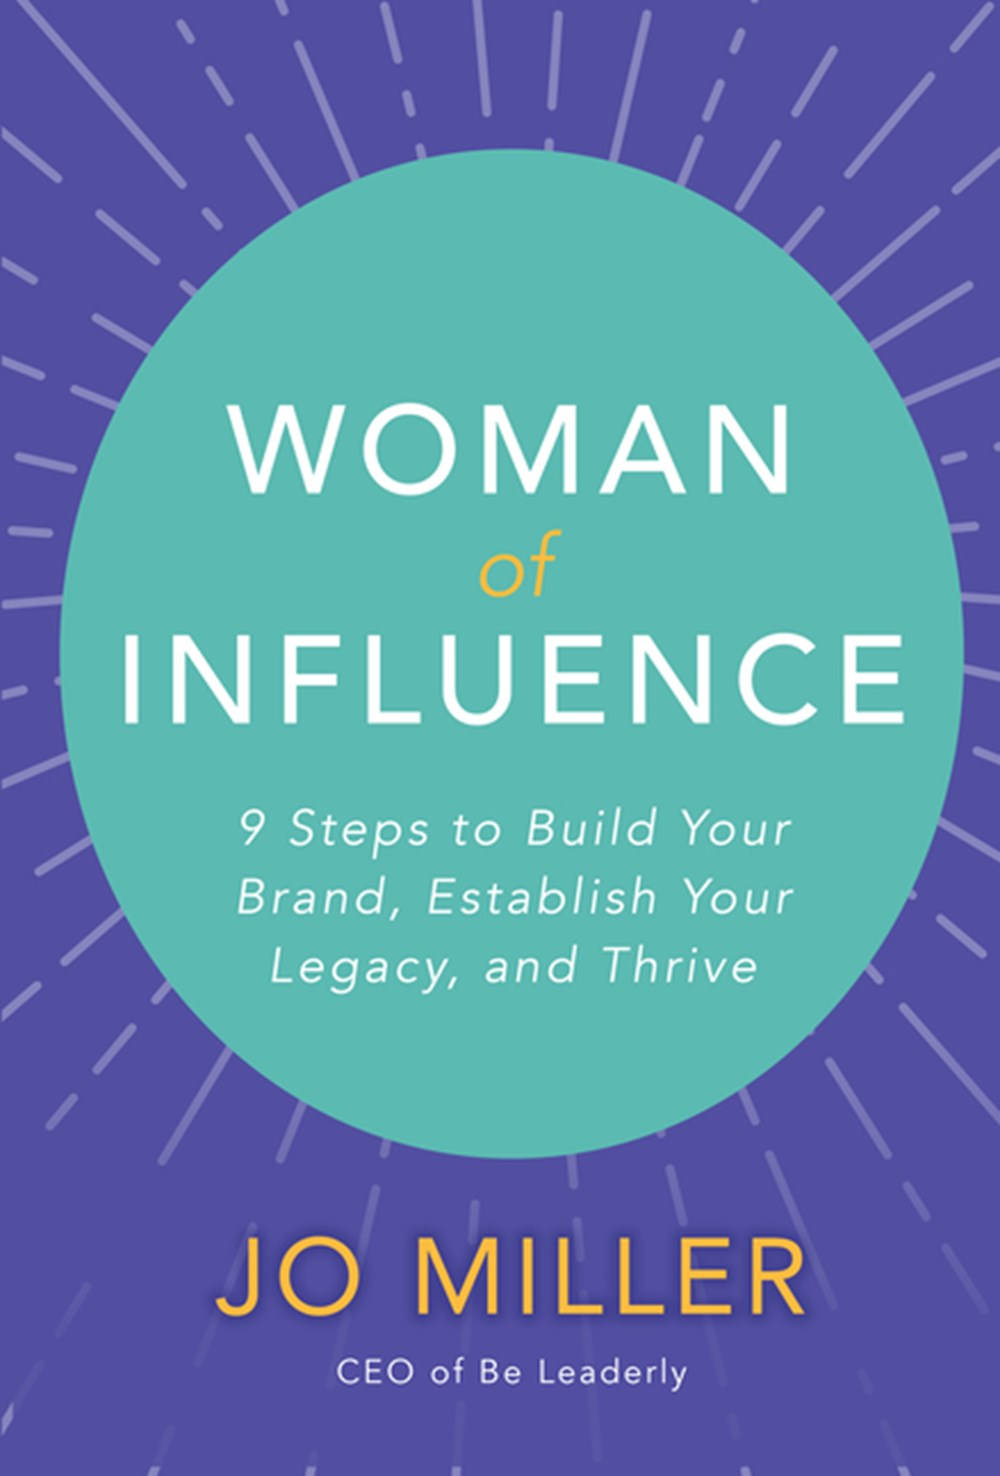 Woman of Influence 9 Steps to Build Your Brand, Establish Your Legacy, and Thrive